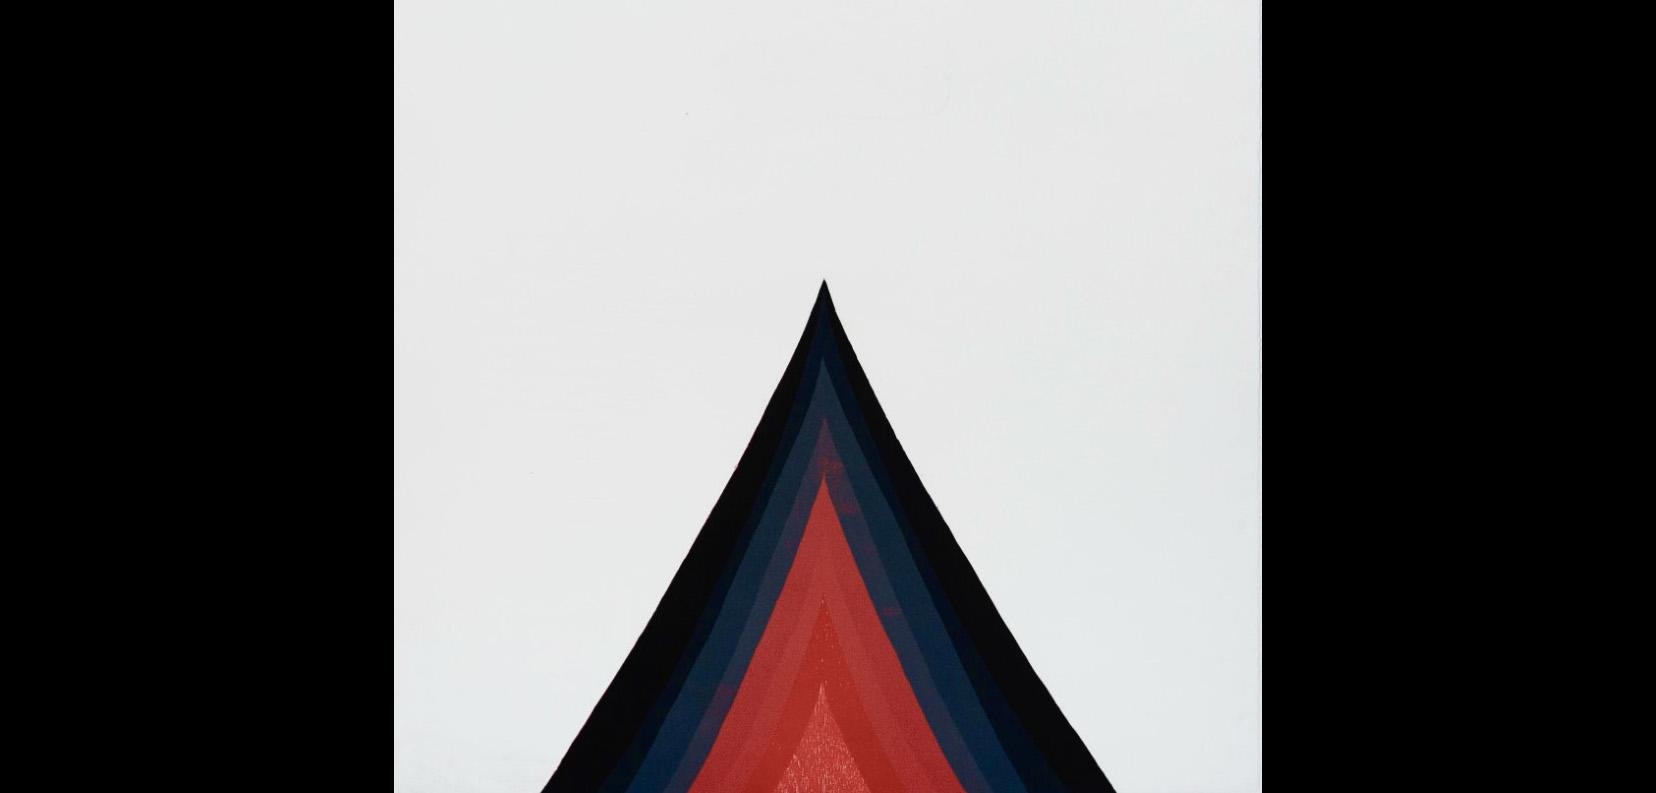 Painting of a painted triangle with a black border, fading to dark blue with a red middle triangle against a white background.